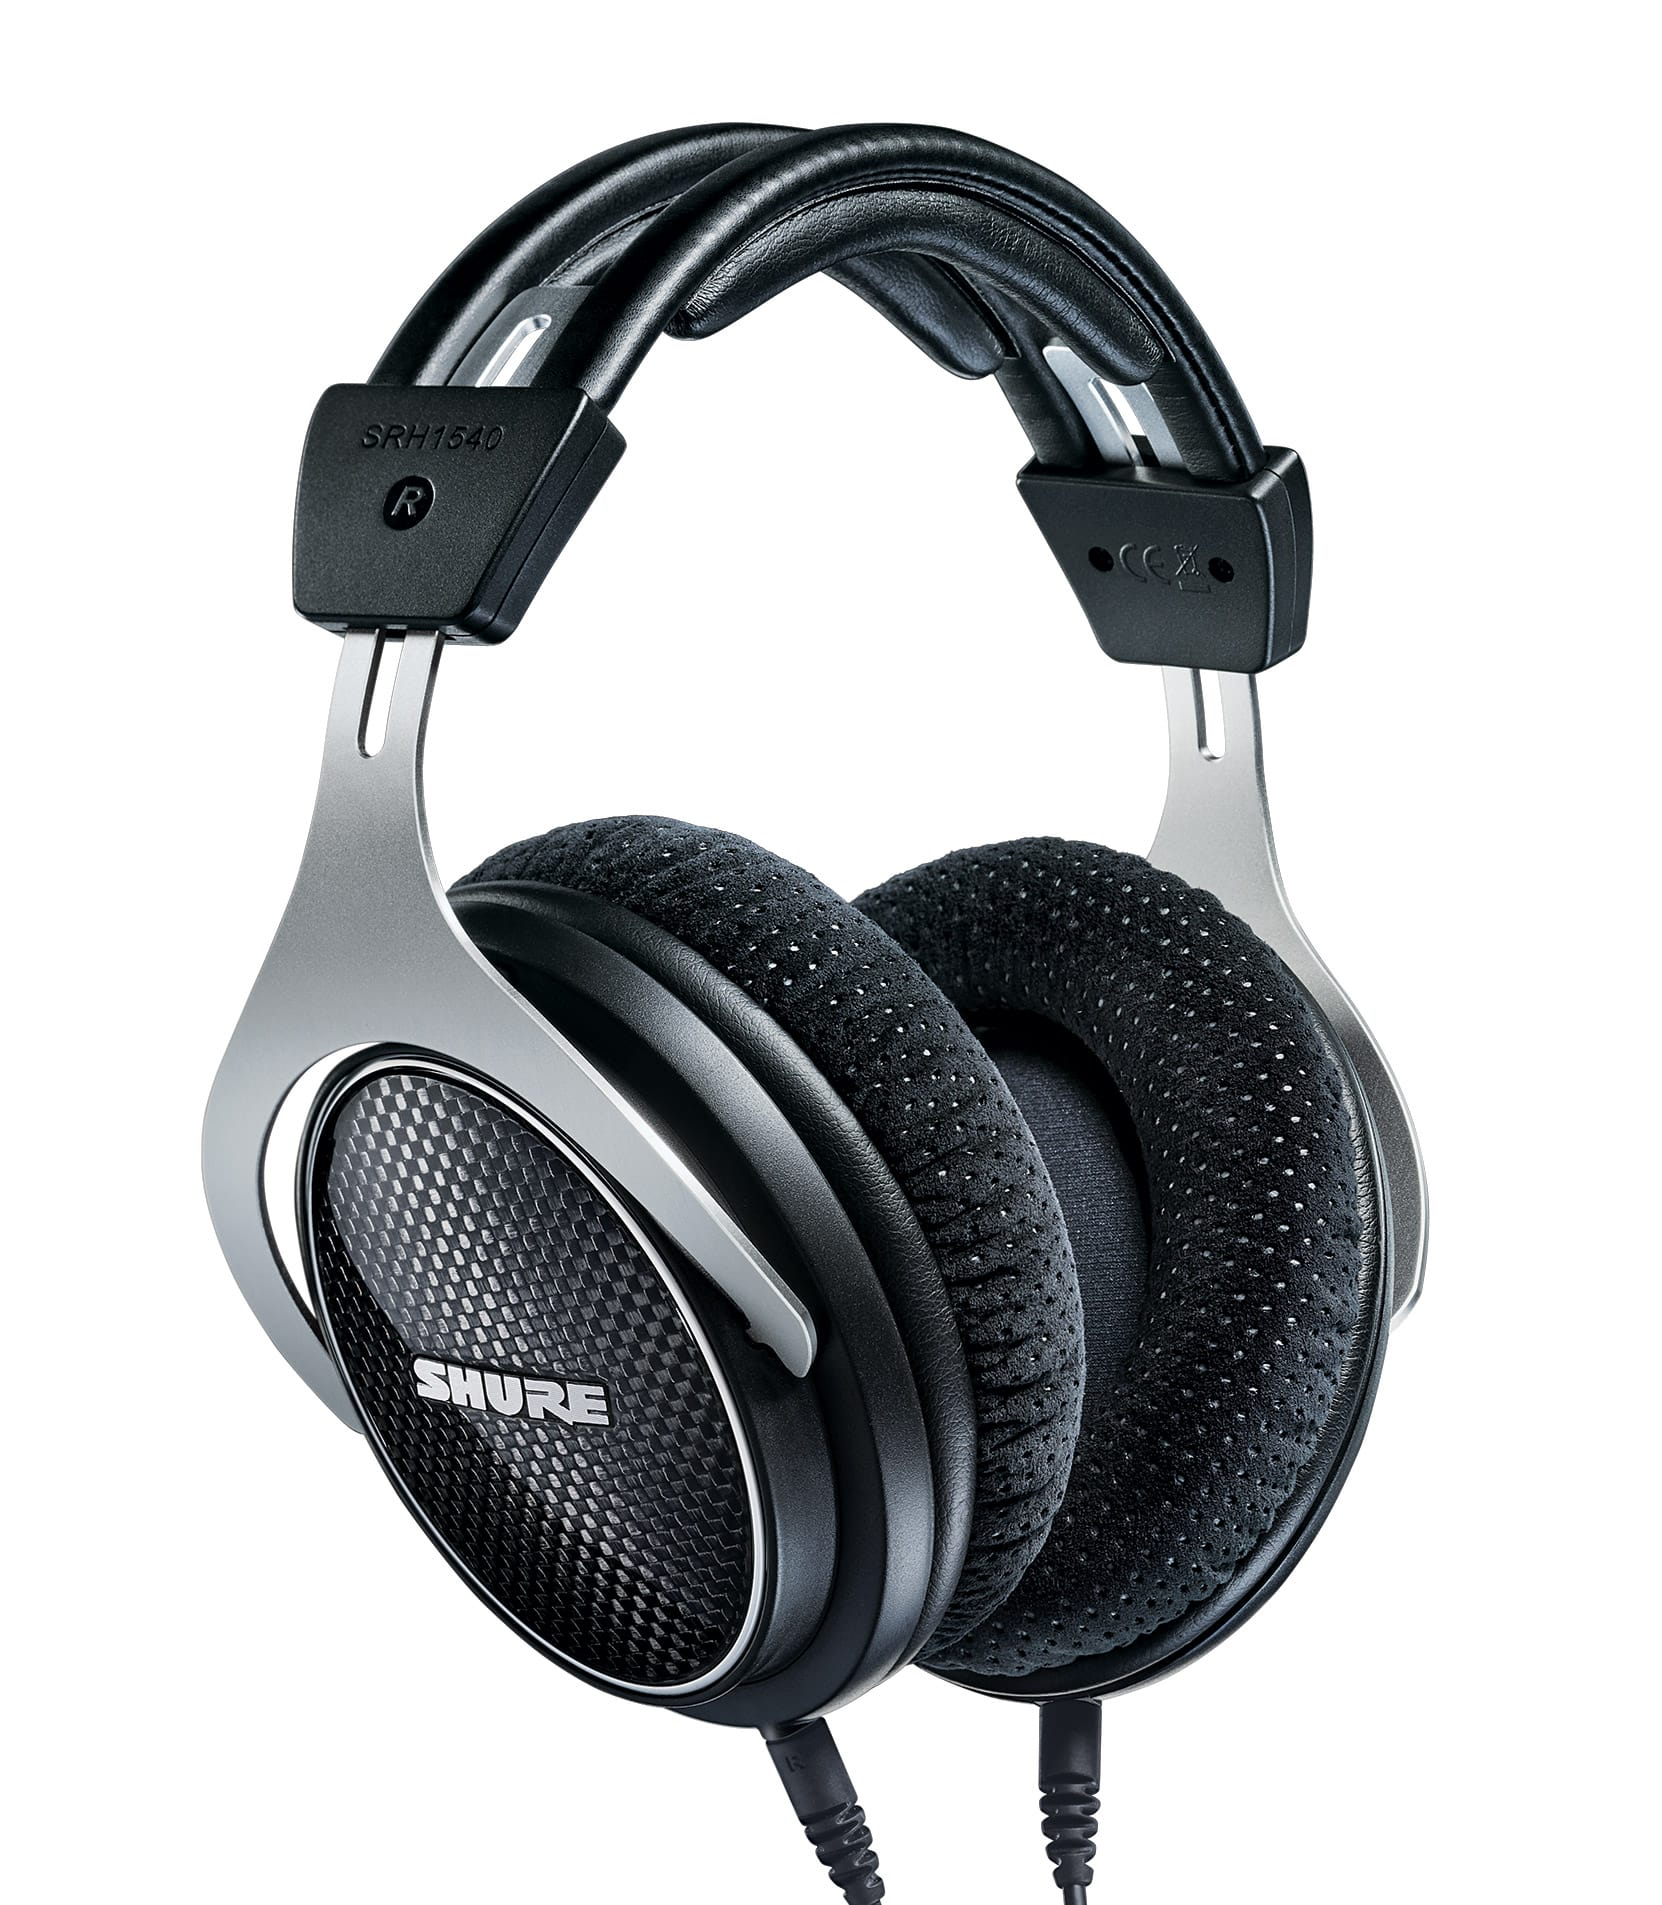 Buy Shure - SRH1540Premium Closed Back Headphones